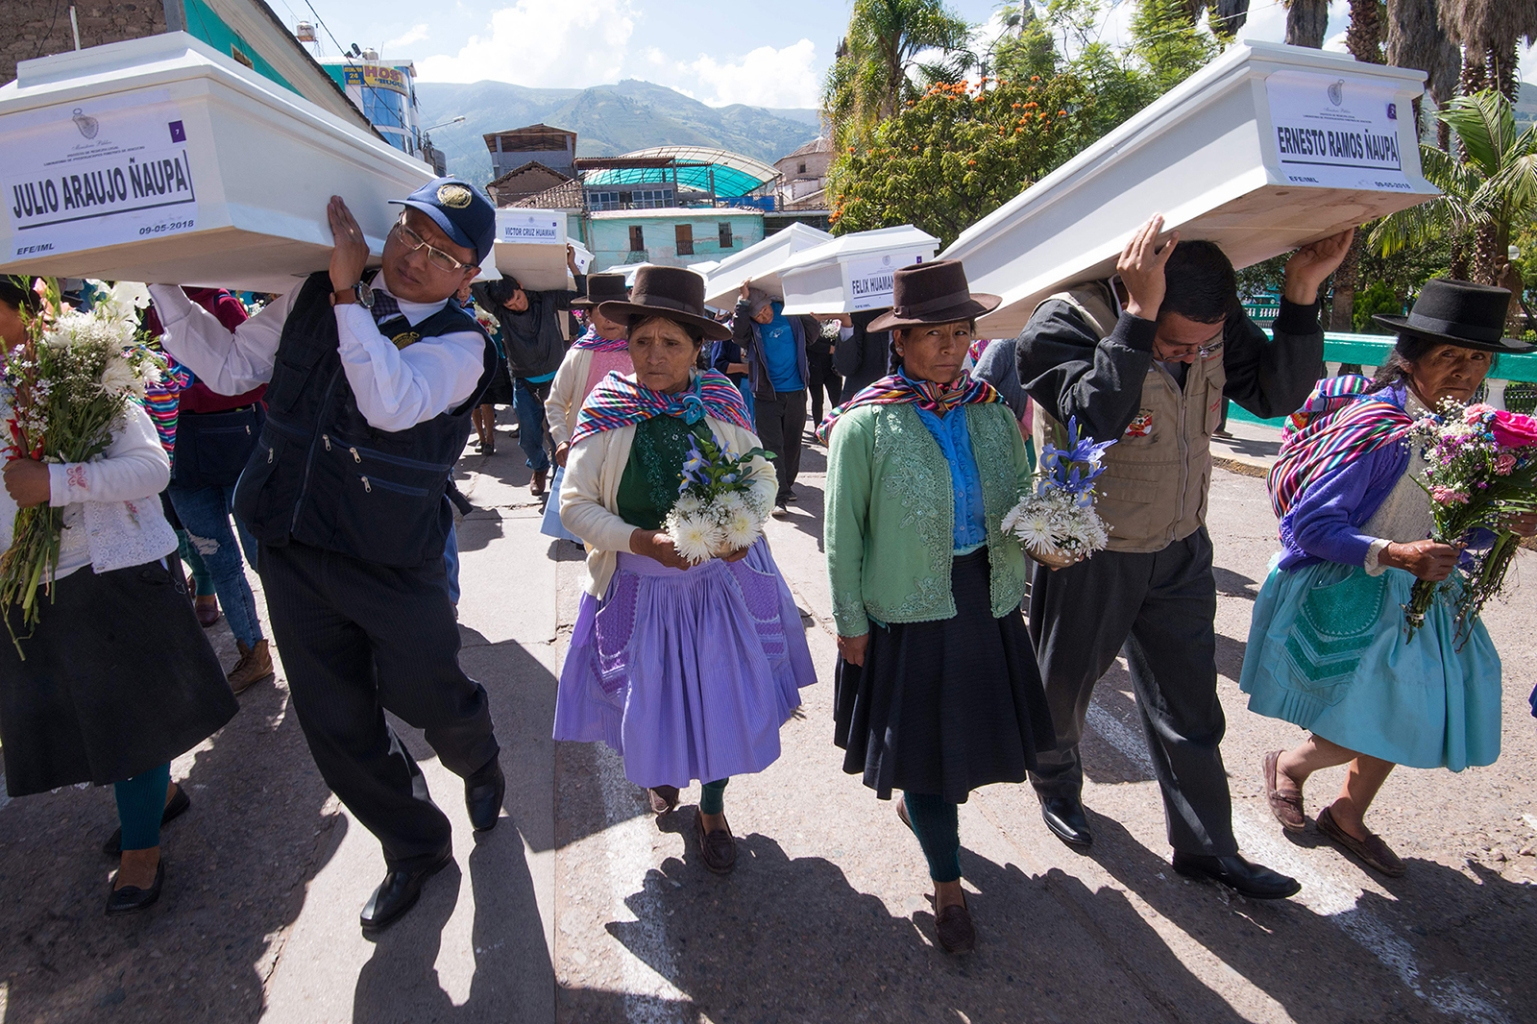 Relatives parade the coffins of their loved ones around the main plaza in Ayacucho, Peru, following a Mass on May 9. Residents received the remains of 23 relatives missing since the mid-1980s, which were recovered from mass graves and identified with DNA. Peru recently raised the official count of missing persons from its violent civil war to 20,329, a third more than previously recognized. CRIS BOURONCLE/AFP/Getty Images